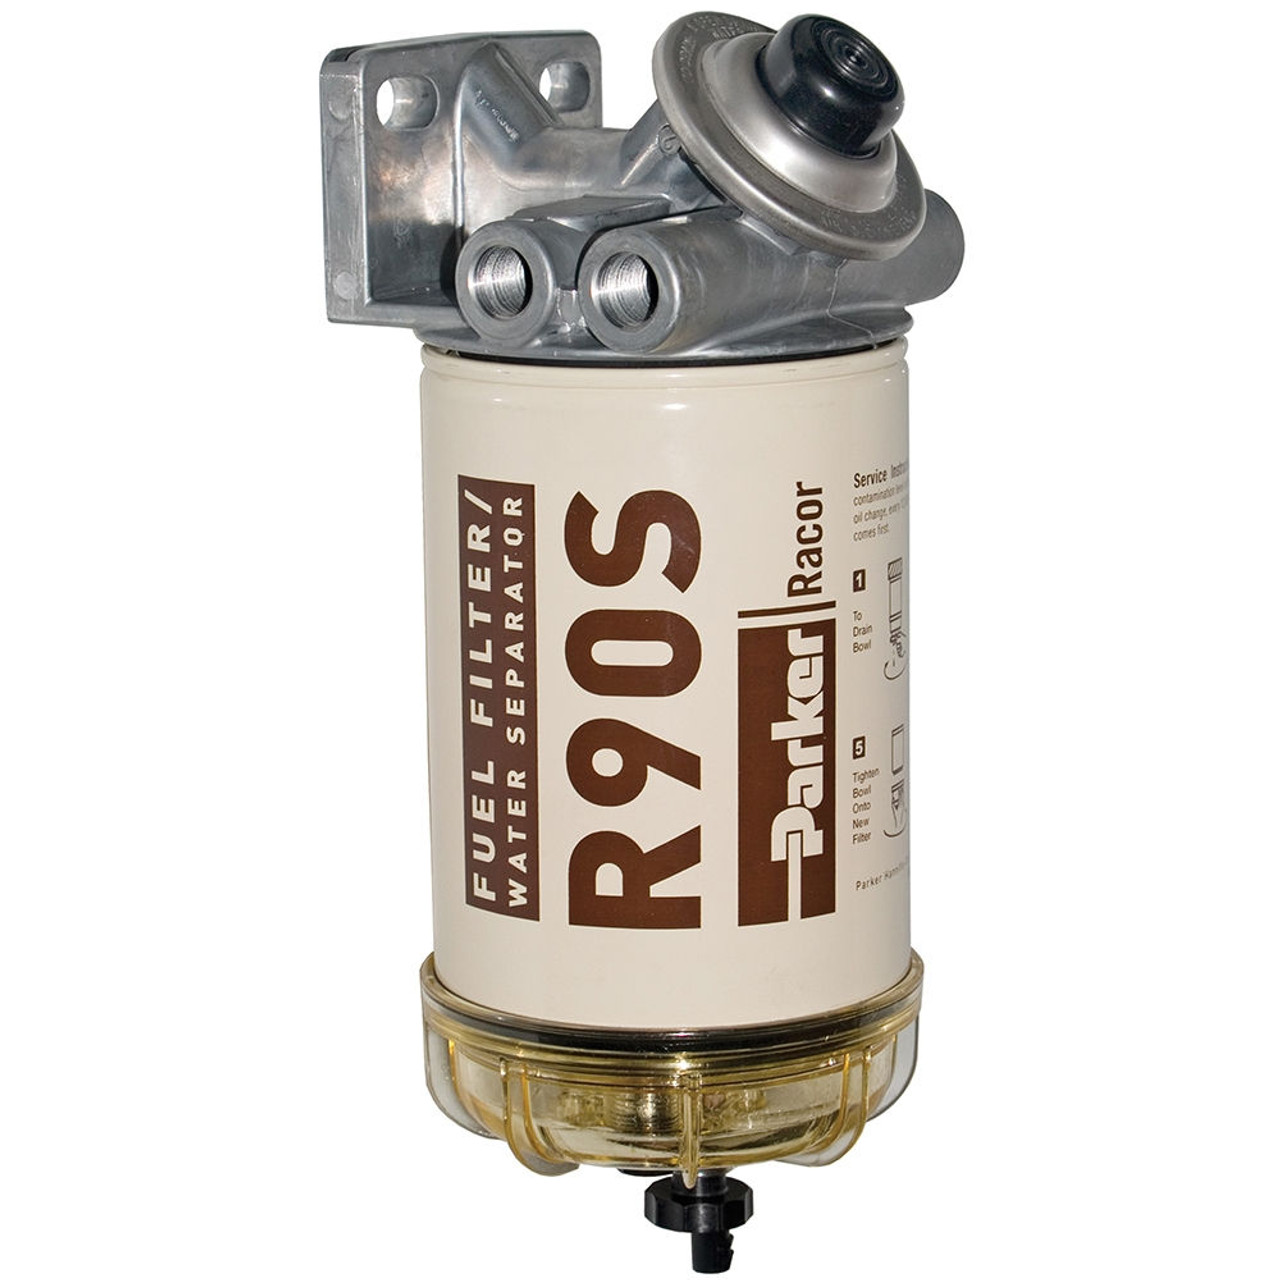 Racor 400 Series 90 GPH Diesel Spin-On Fuel Filter - 2 Micron - 6